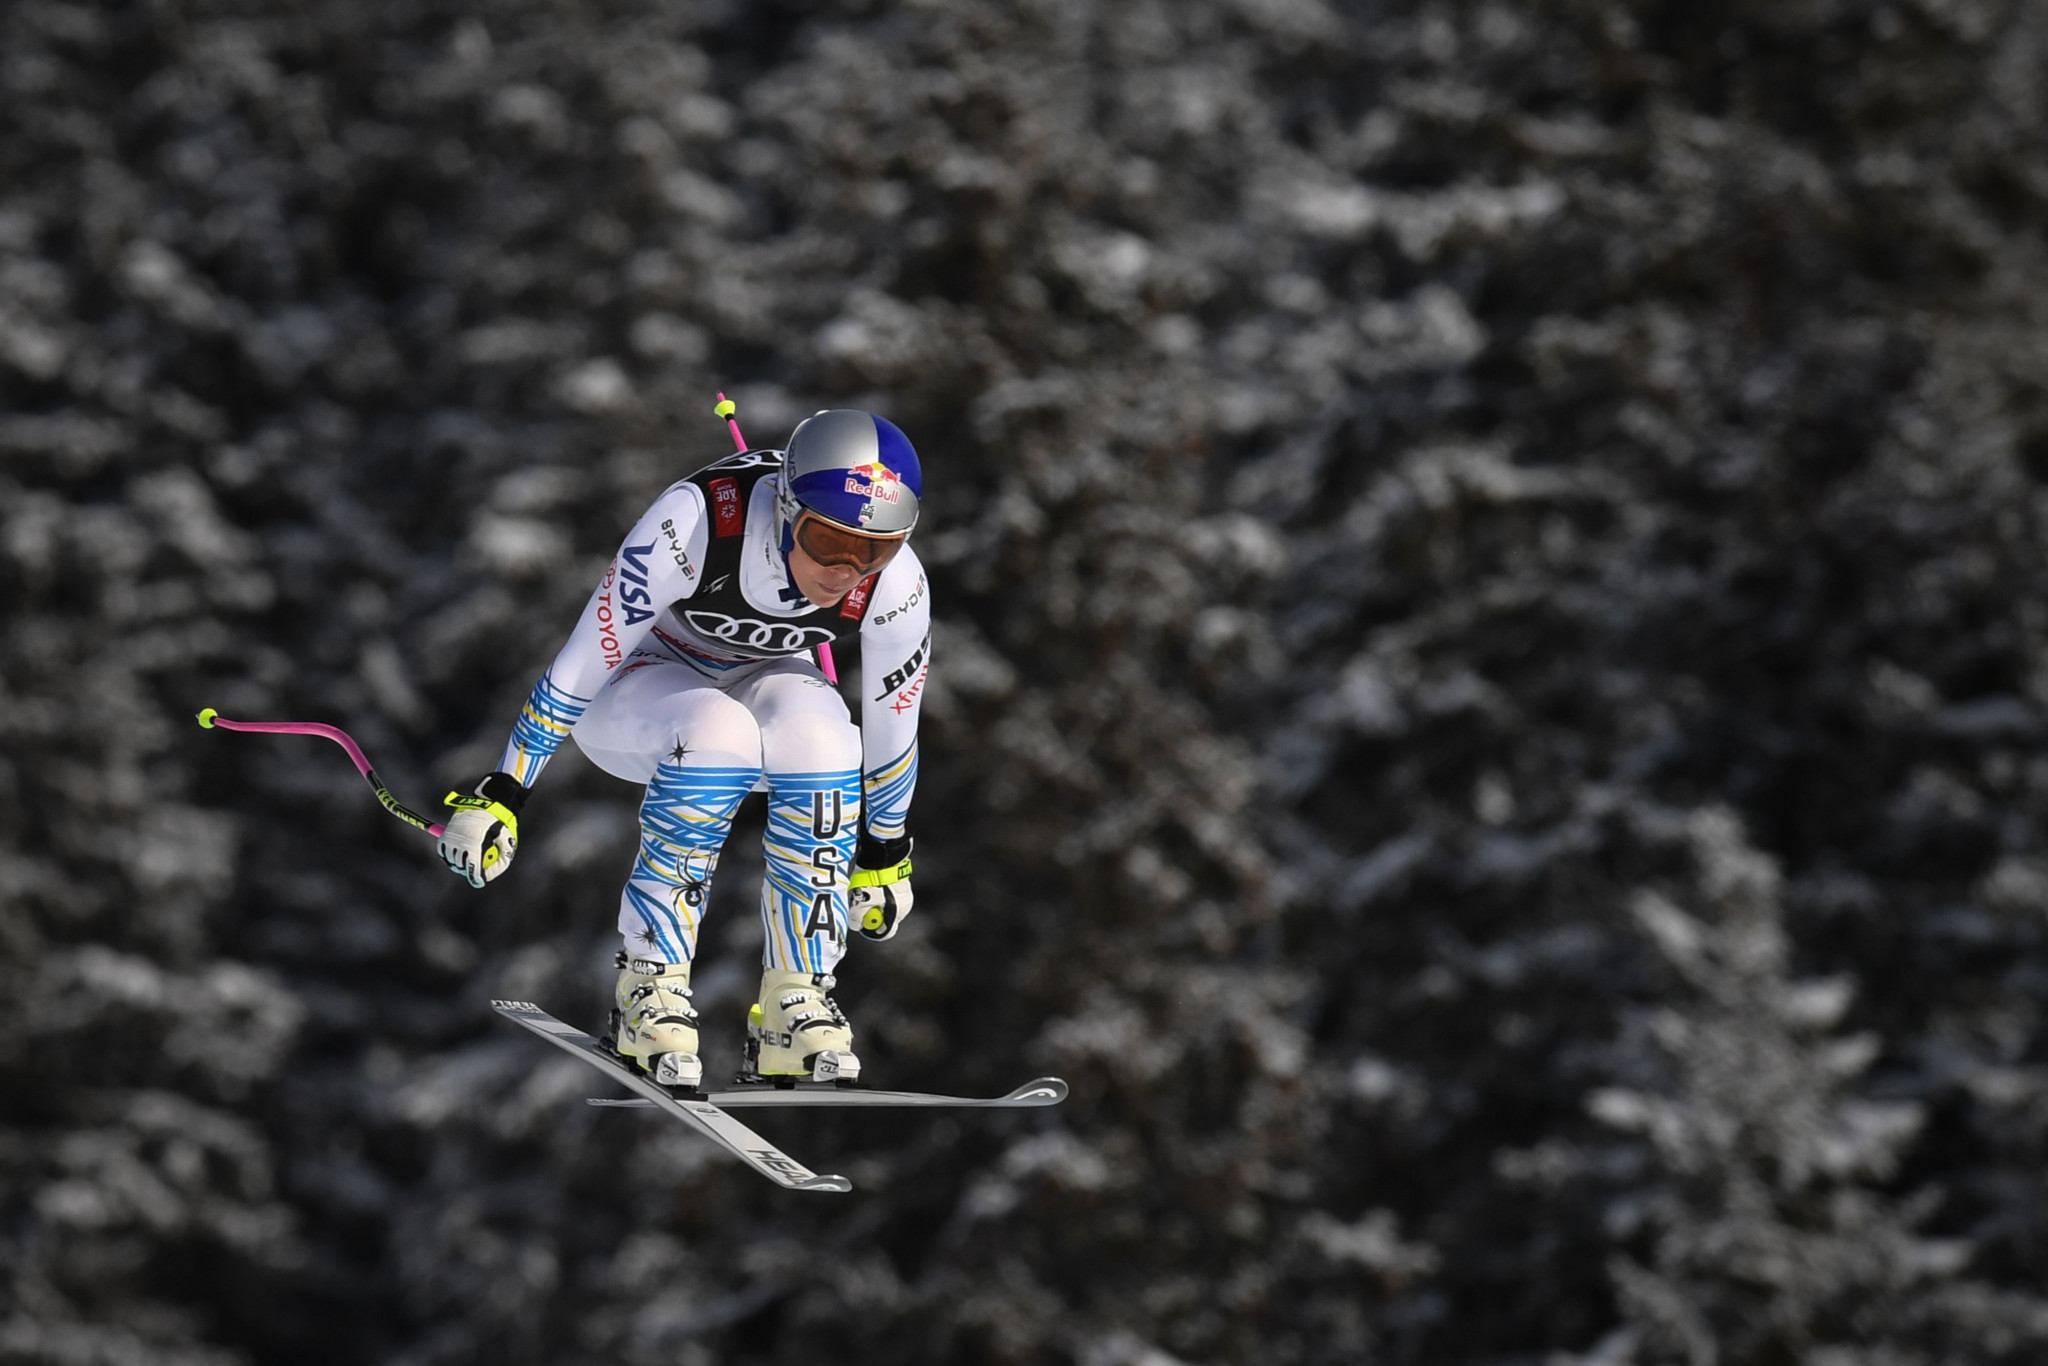 Lindsey Vonn briefly held the race lead in the final race of her career ©Getty Images